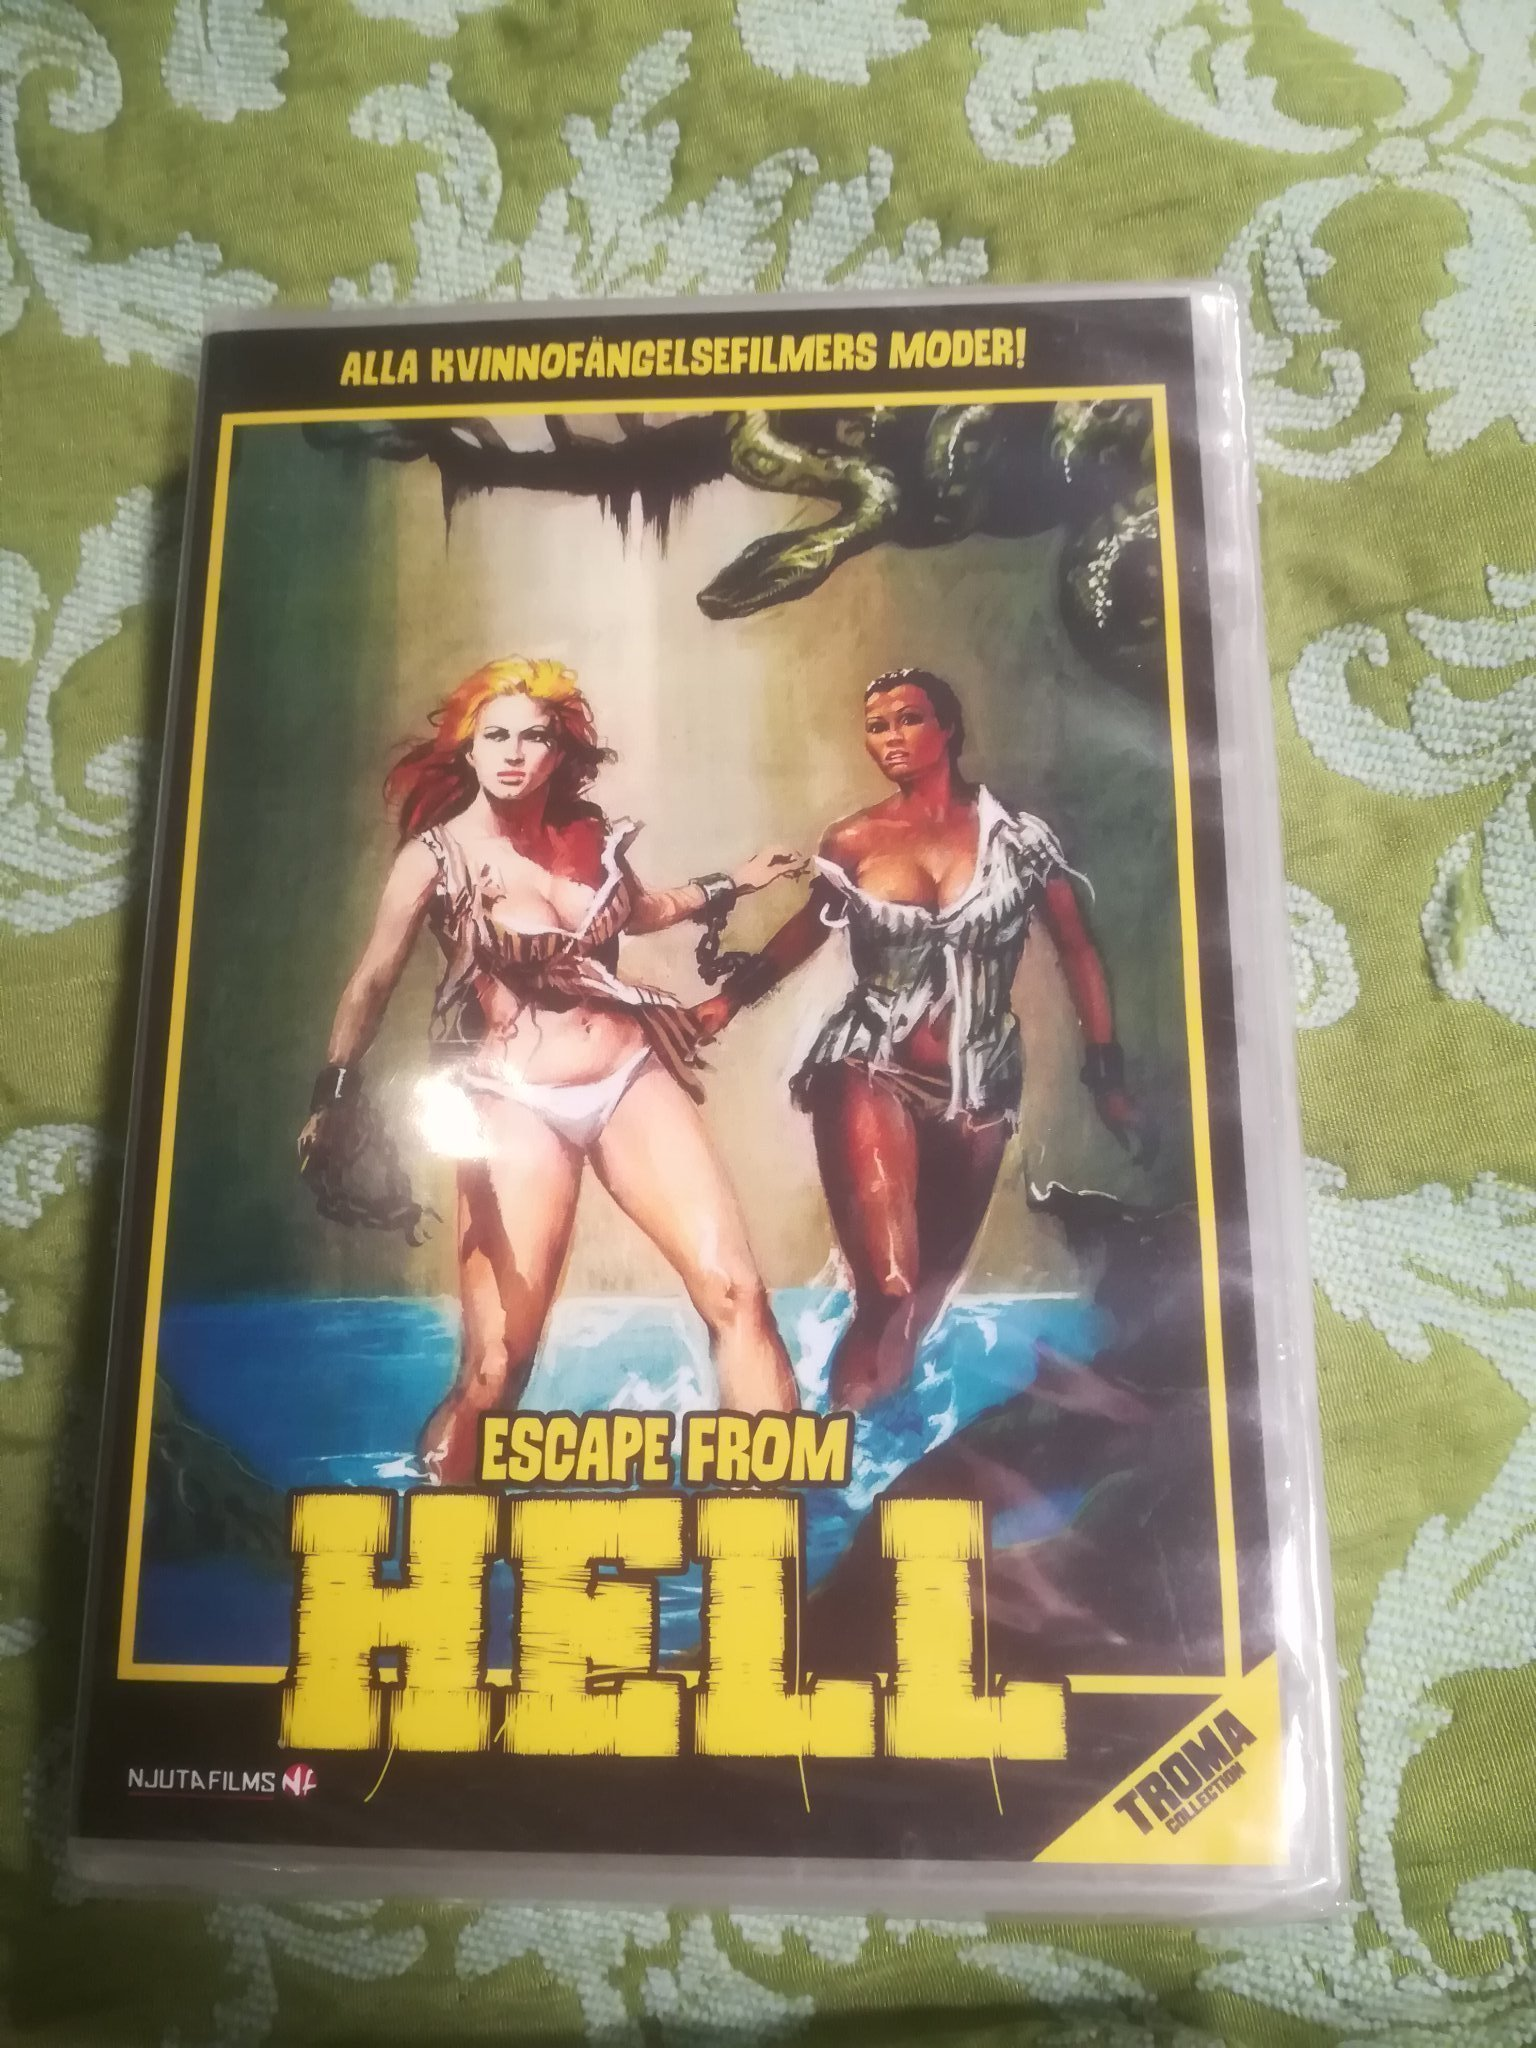 ESCAPE FROM HELL 1980 Mulargia Njuta  Utgått NY!